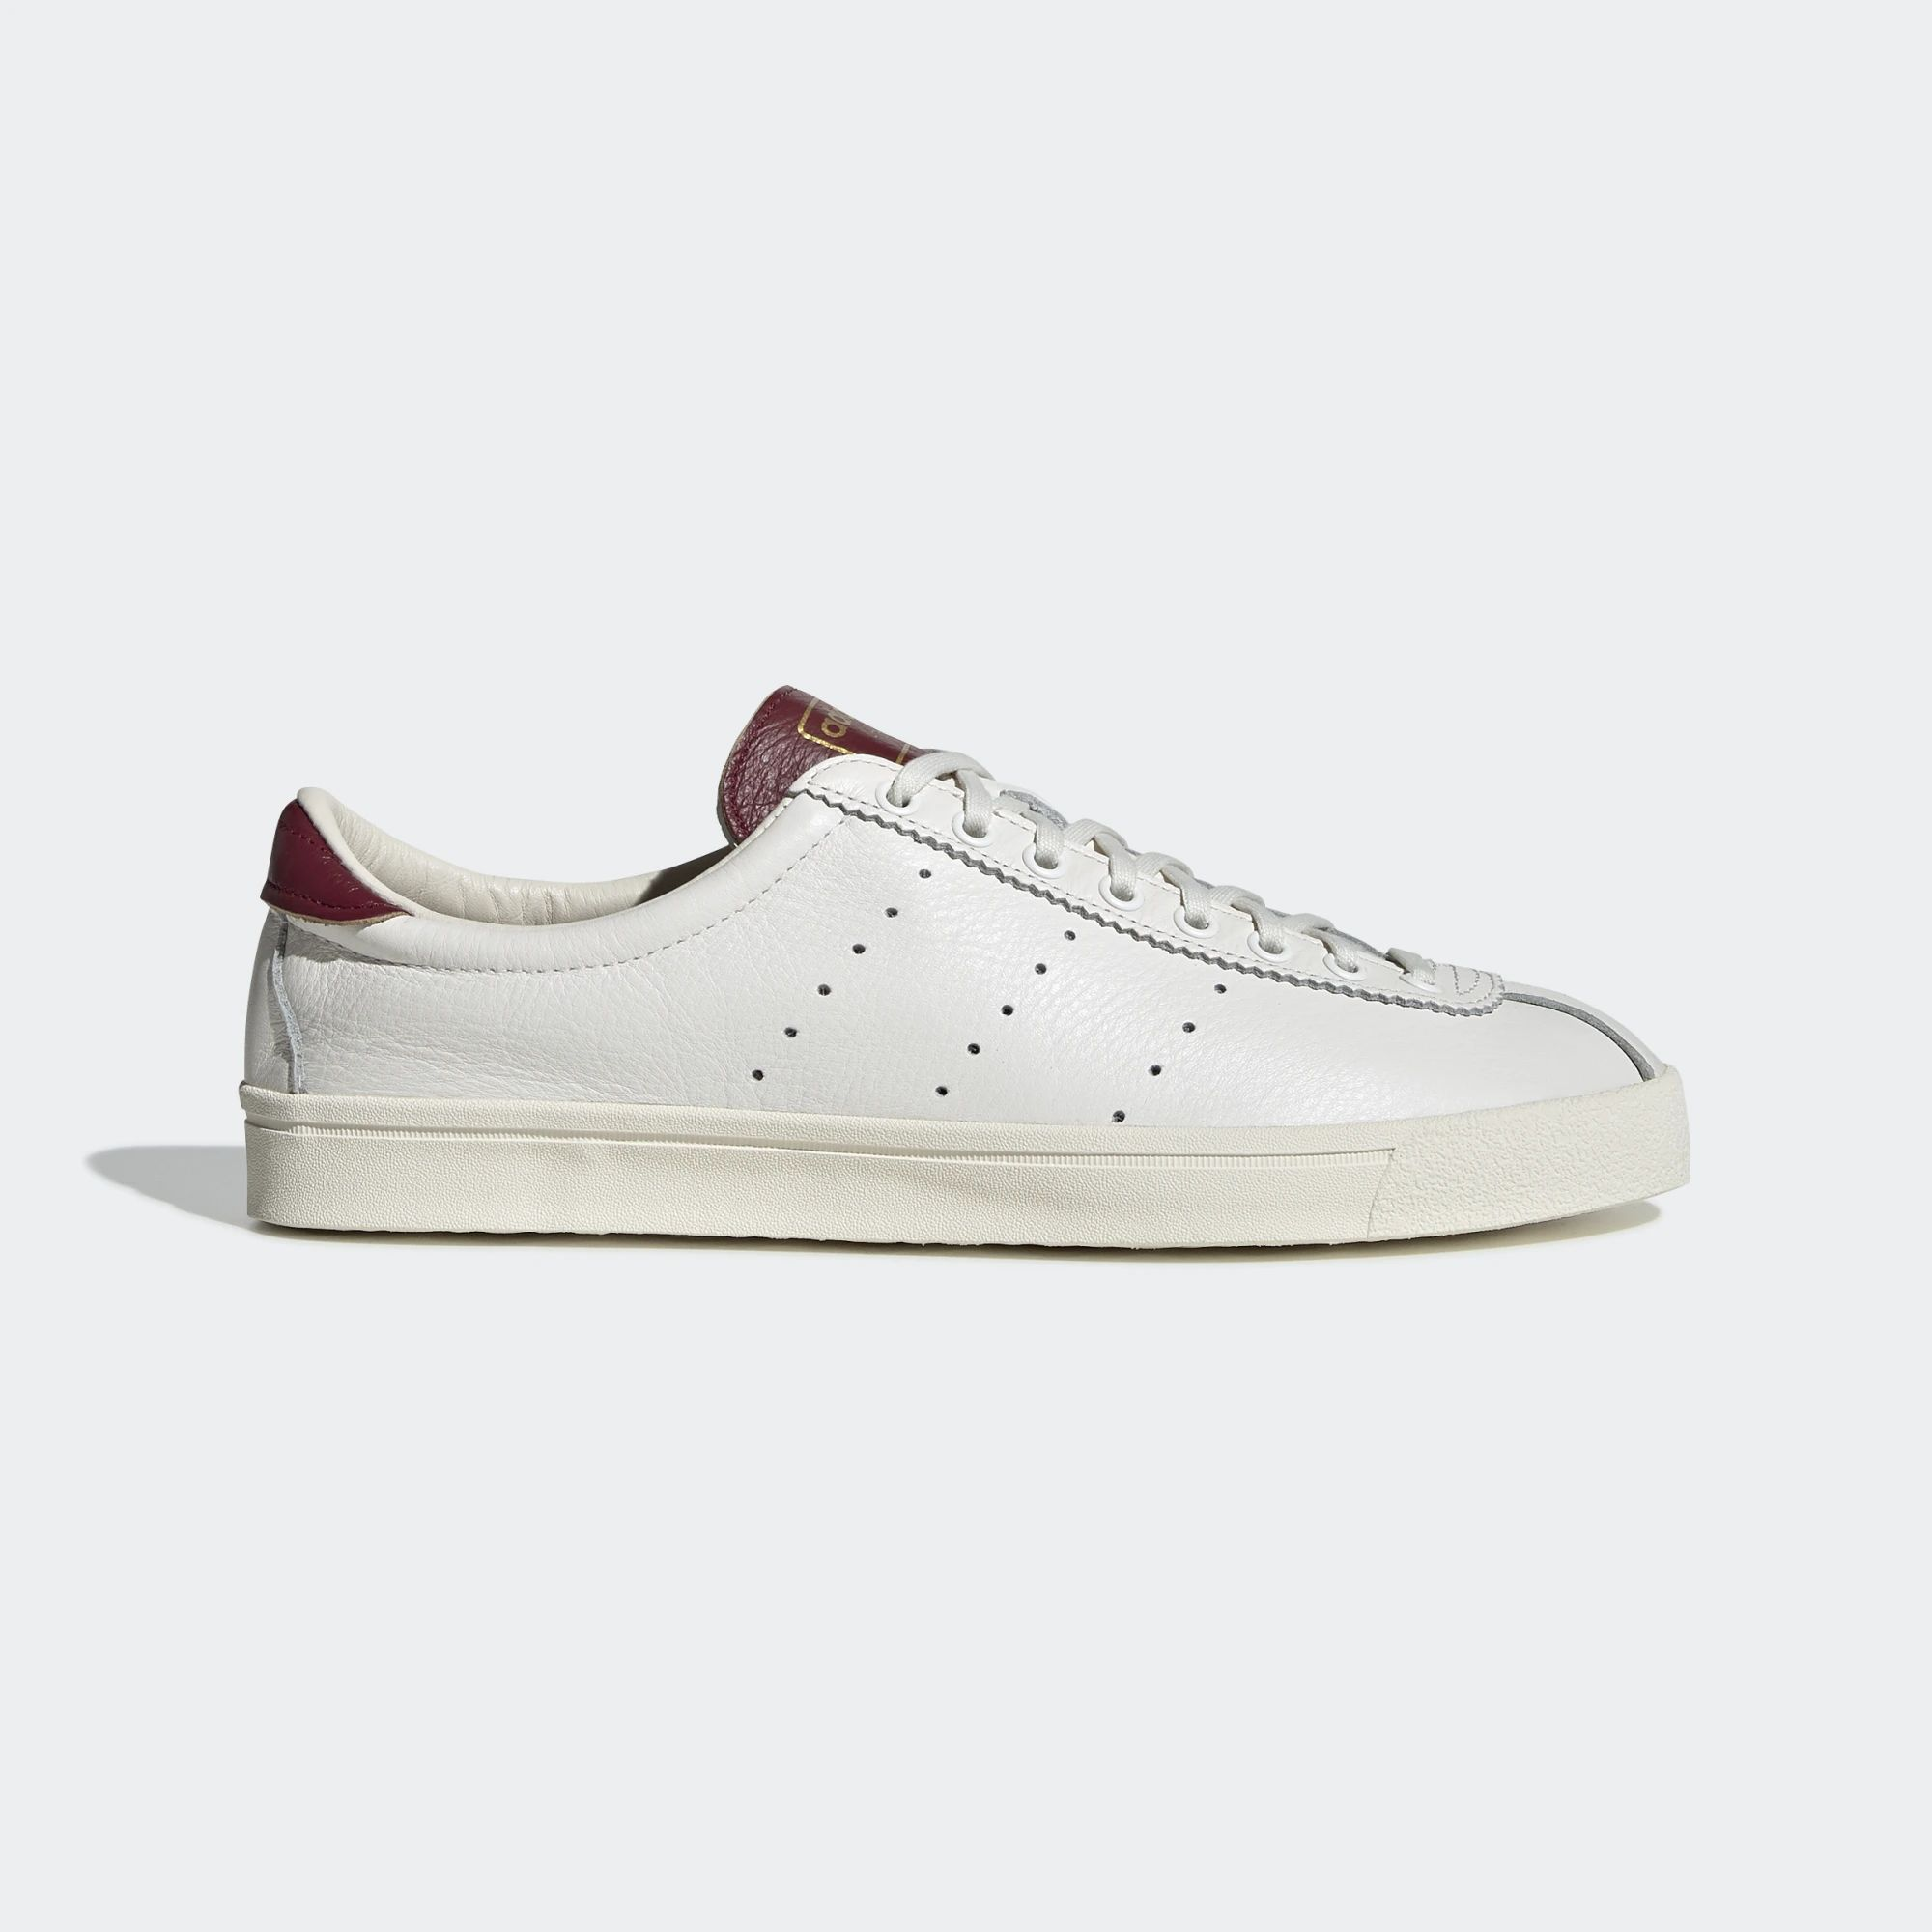 Adidas Lacombe Shoes - Cloud White / Collegiate Burgundy / Cream White